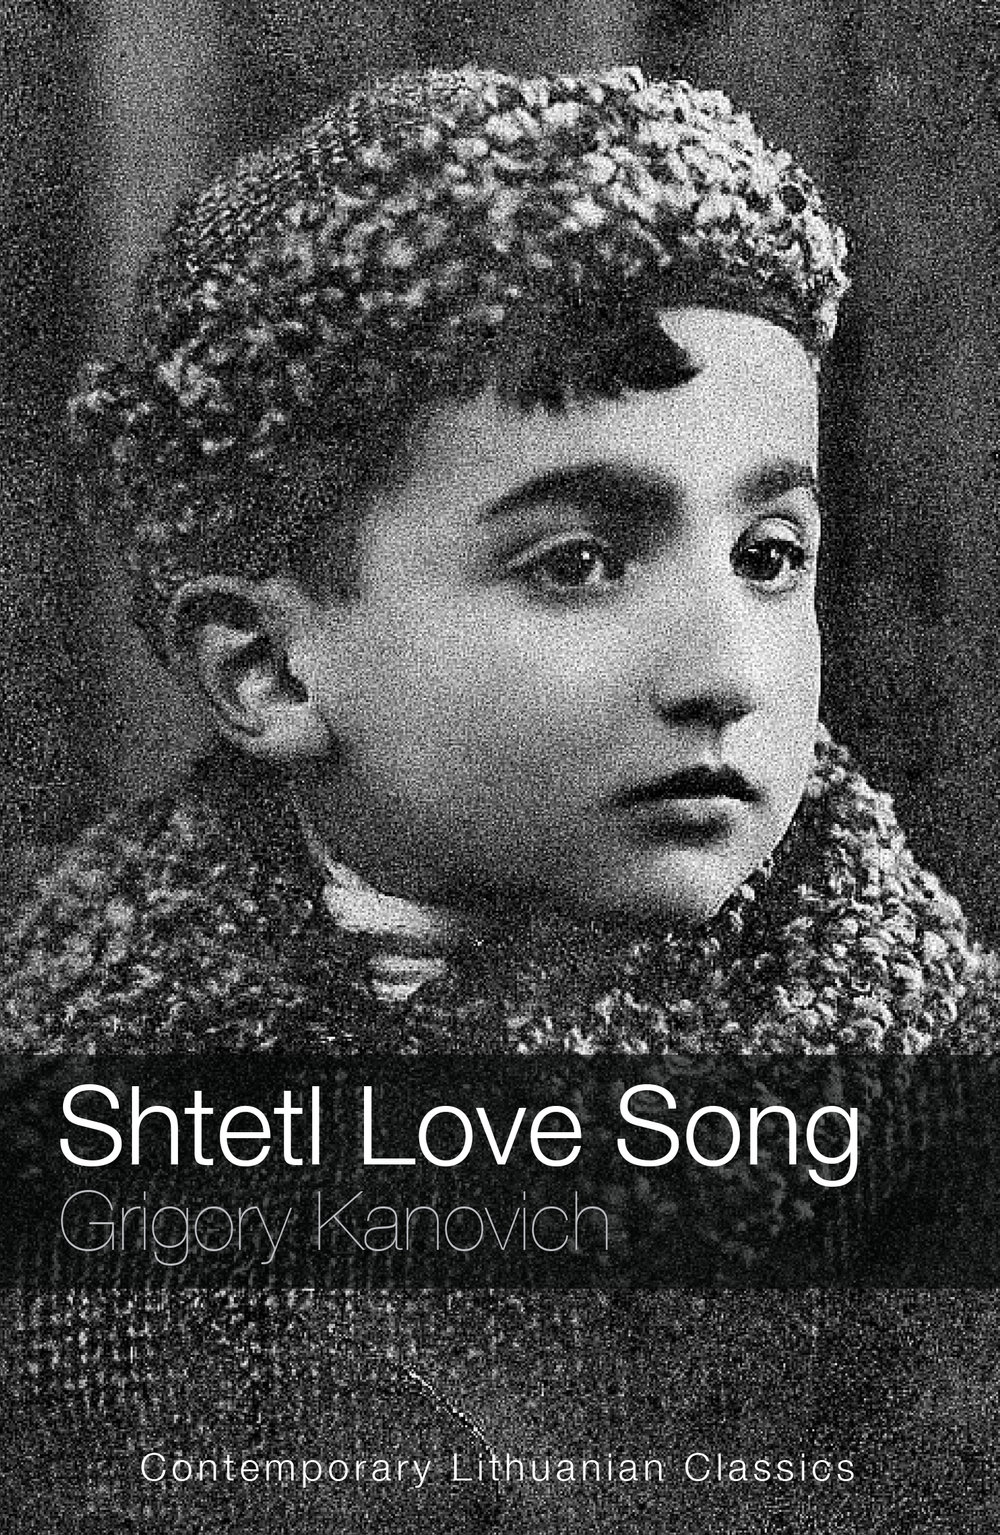 Shtetl Love Song - Grigory KanovichBuyIn 'Shtetl Love Song' Grigory Kanovich tells the story of his mother and in doing so peels back the surface of the Jewish community that lived in pre-war Lithuania.Set against the backdrop of the political turmoil of 1930s, Kanovich lovingly recalls his native Jonava; its rich merchants and impoverished cobblers, the beggars and the gossips. He traces the growing fear of the Nazis, the Russian invasion, the political persecution and the arrests and the exiles that shaped a nation.'Shtetl Love Song' is a requiem for the pre-war Jewish shtetl, for a people and a way of life that was destroyed in the maelstrom of war.'I had intended for quite a long time to write about my mother with that joyous enthusiasm and abundant detail with which it is fitting to recall one's parents, the people closest and dearest to you'